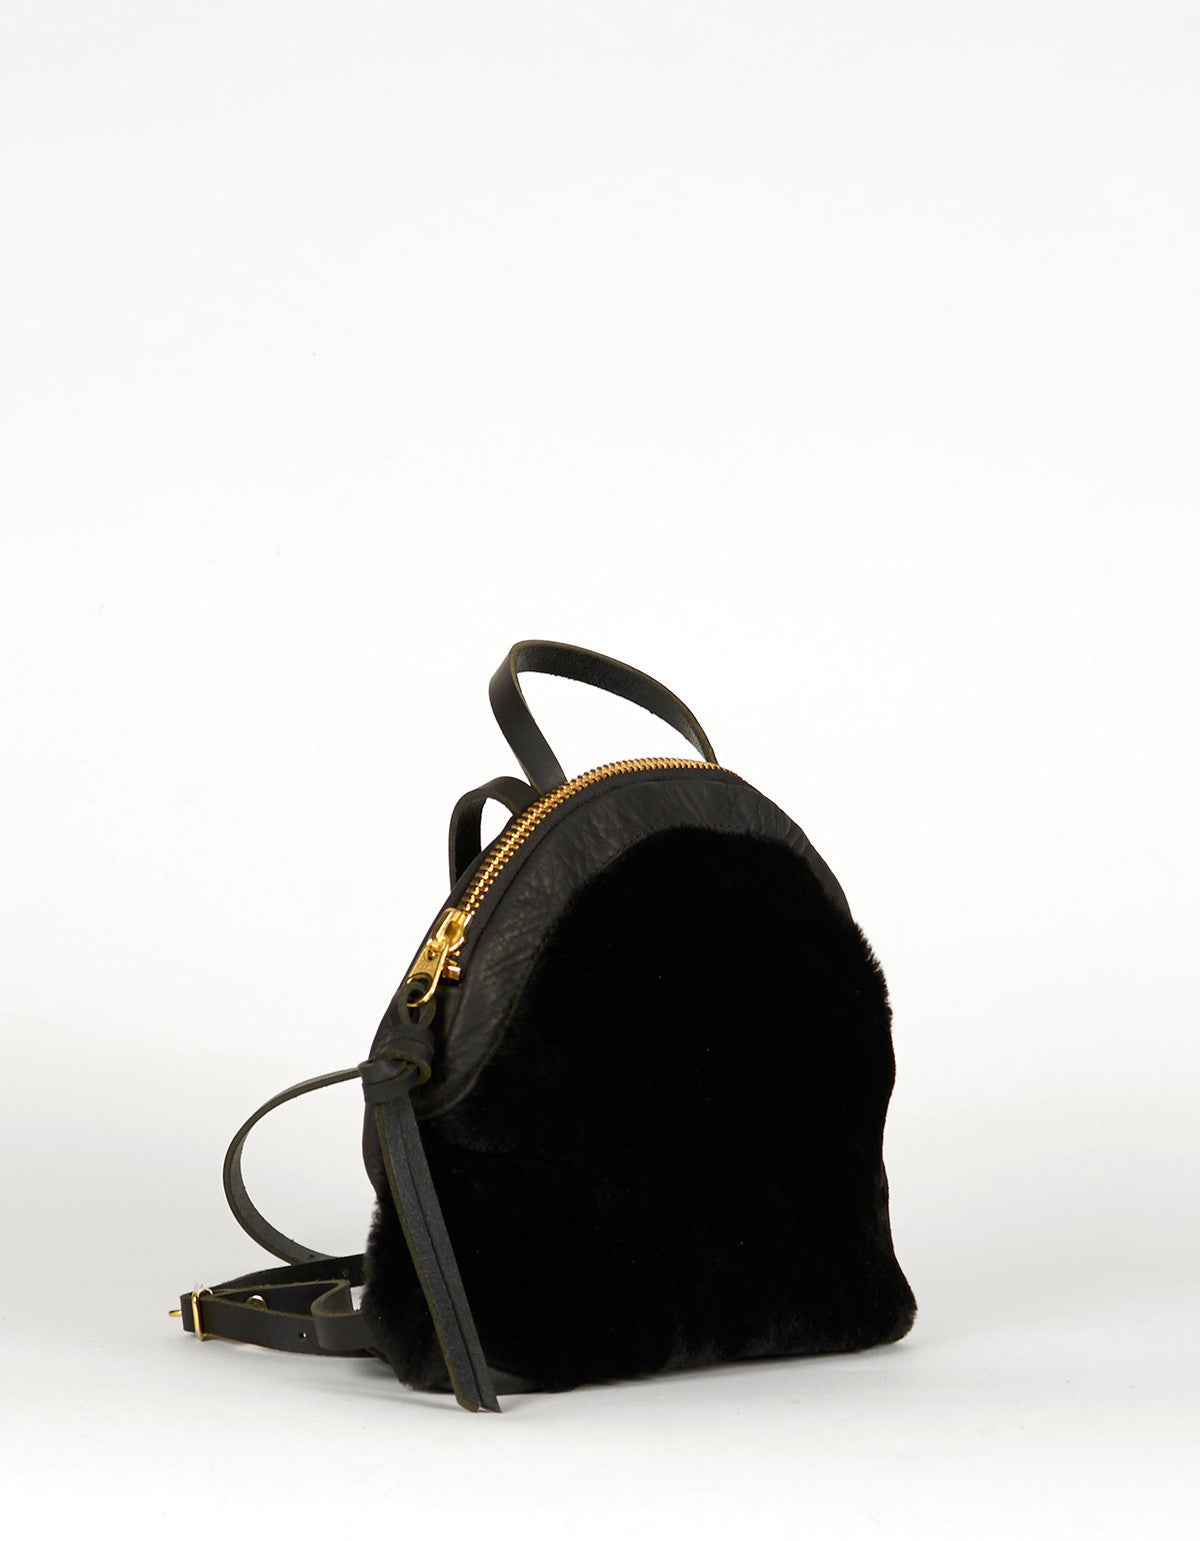 Eleven Thirty Anni Mini Backpack Black Shearling - Still Life - 2